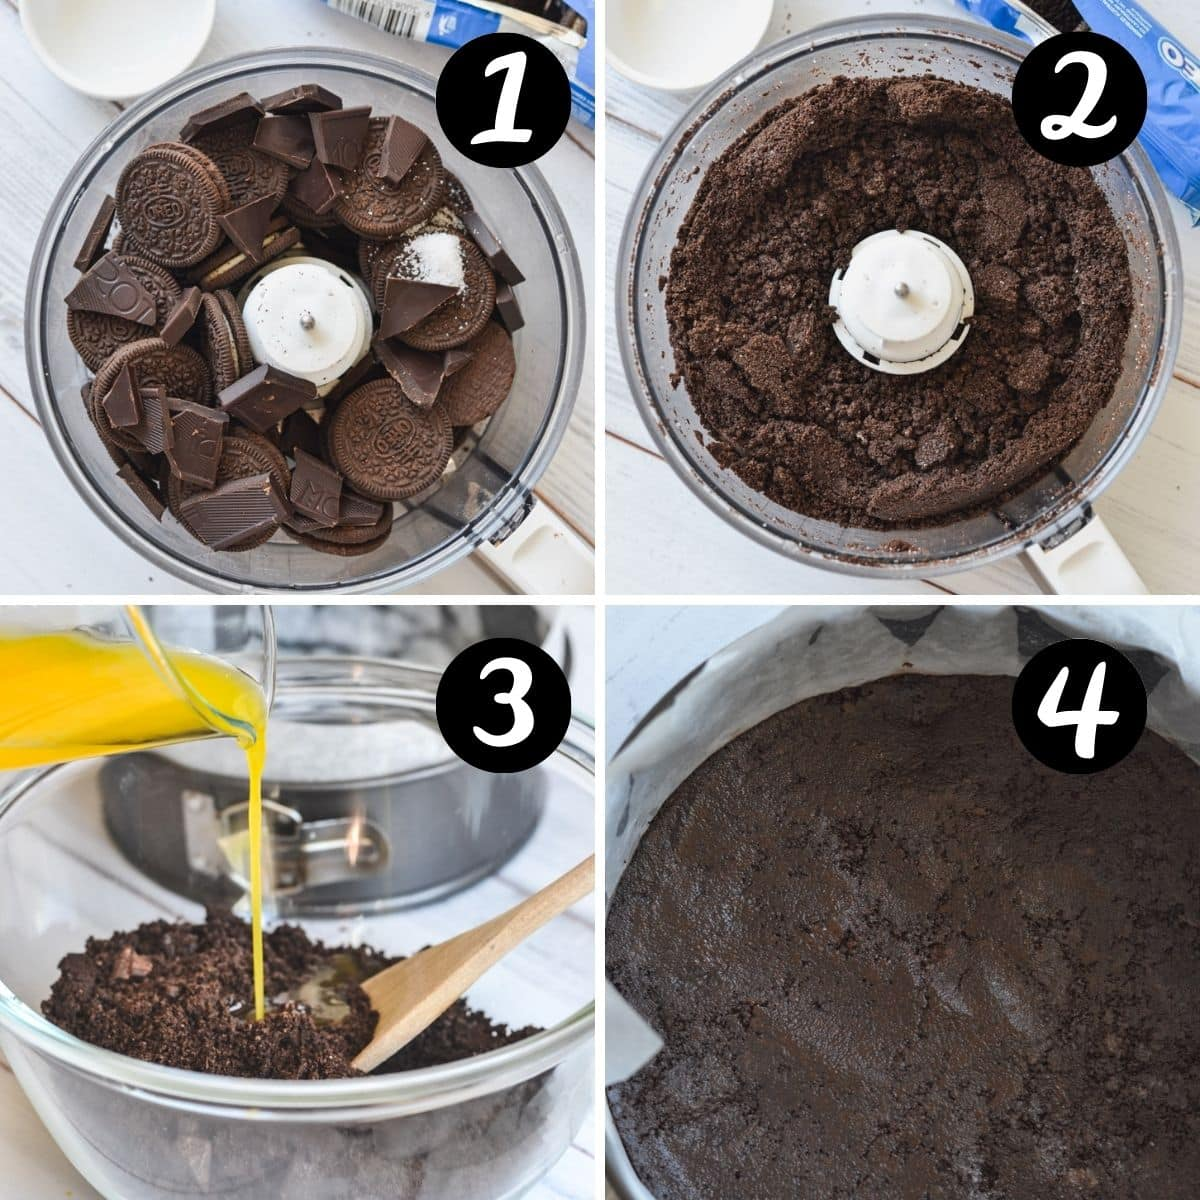 images of cookies in a food processor and the steps to make the cheesecake base